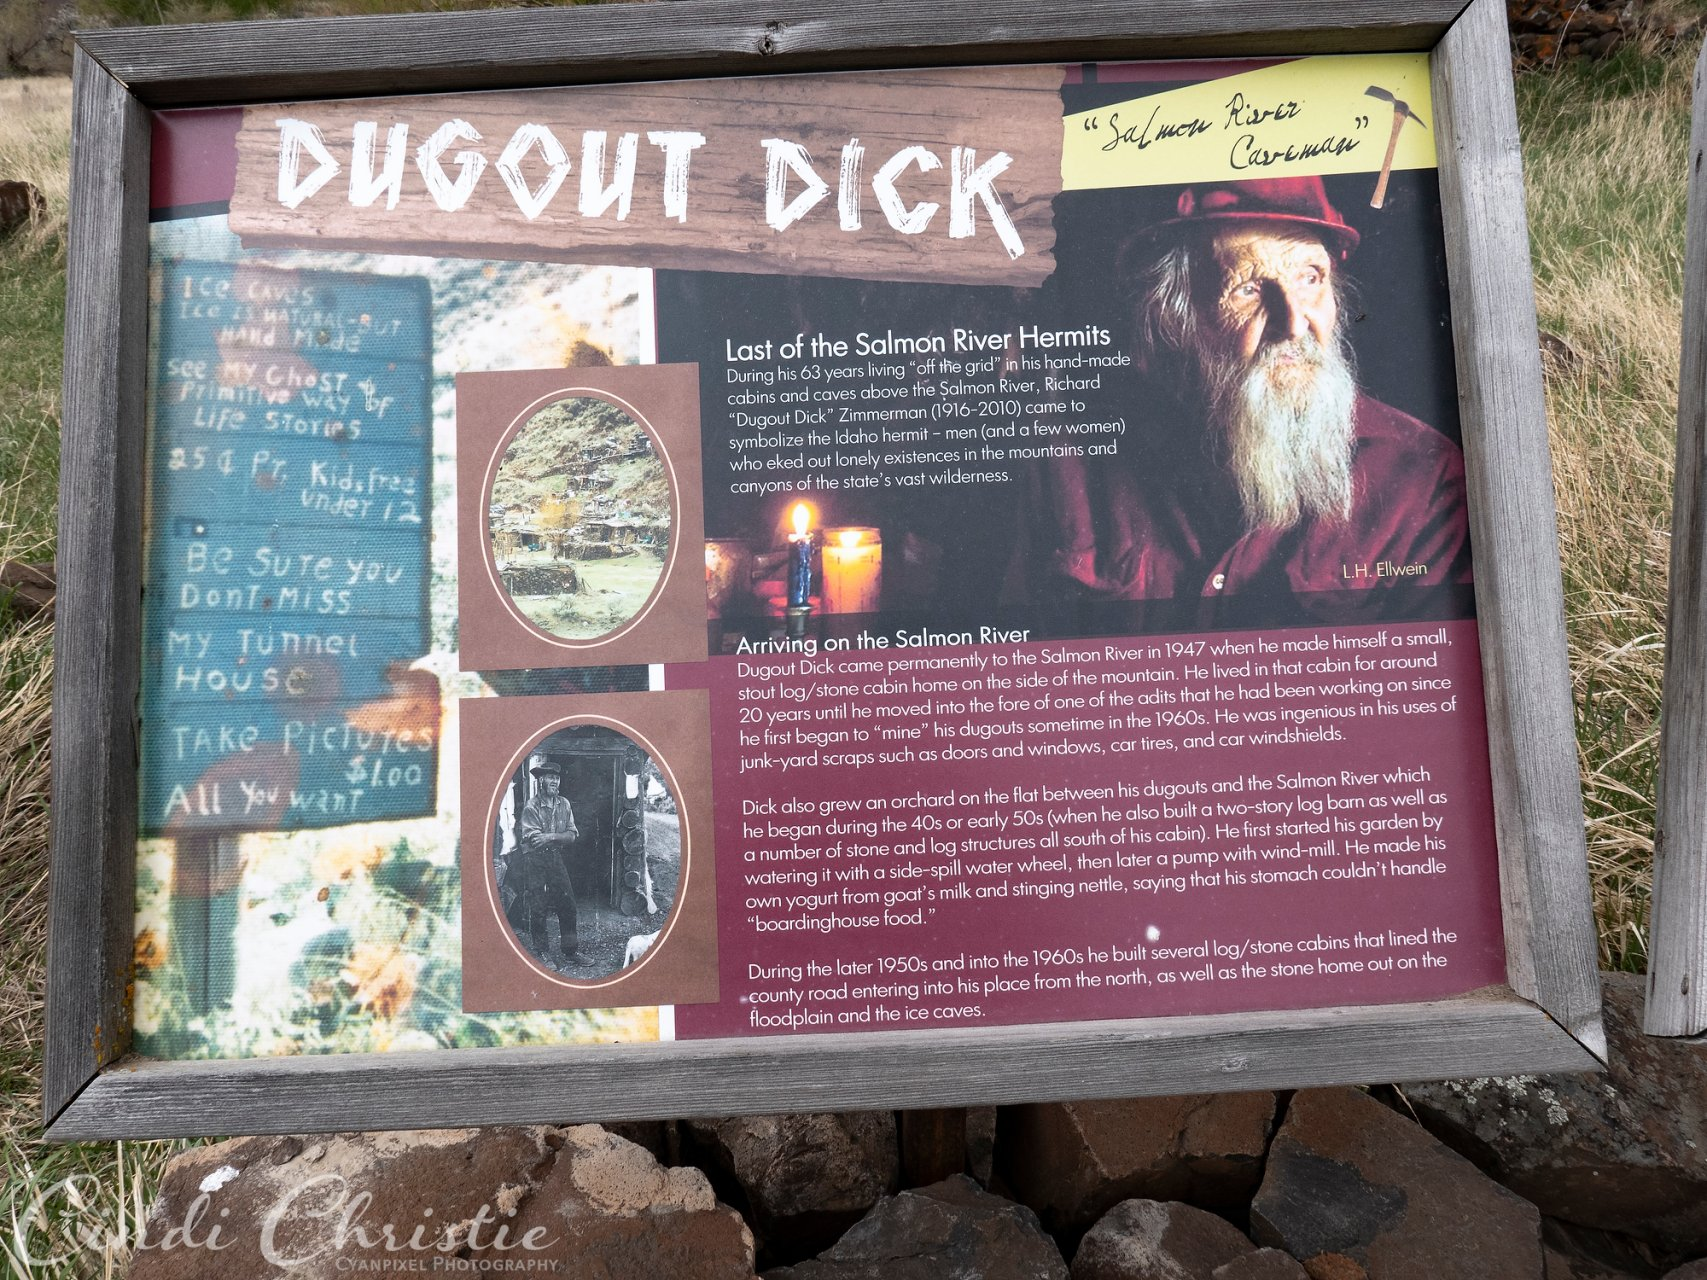 Dugout Dick's life is summarized with signs at the Bureau of Land Management site.